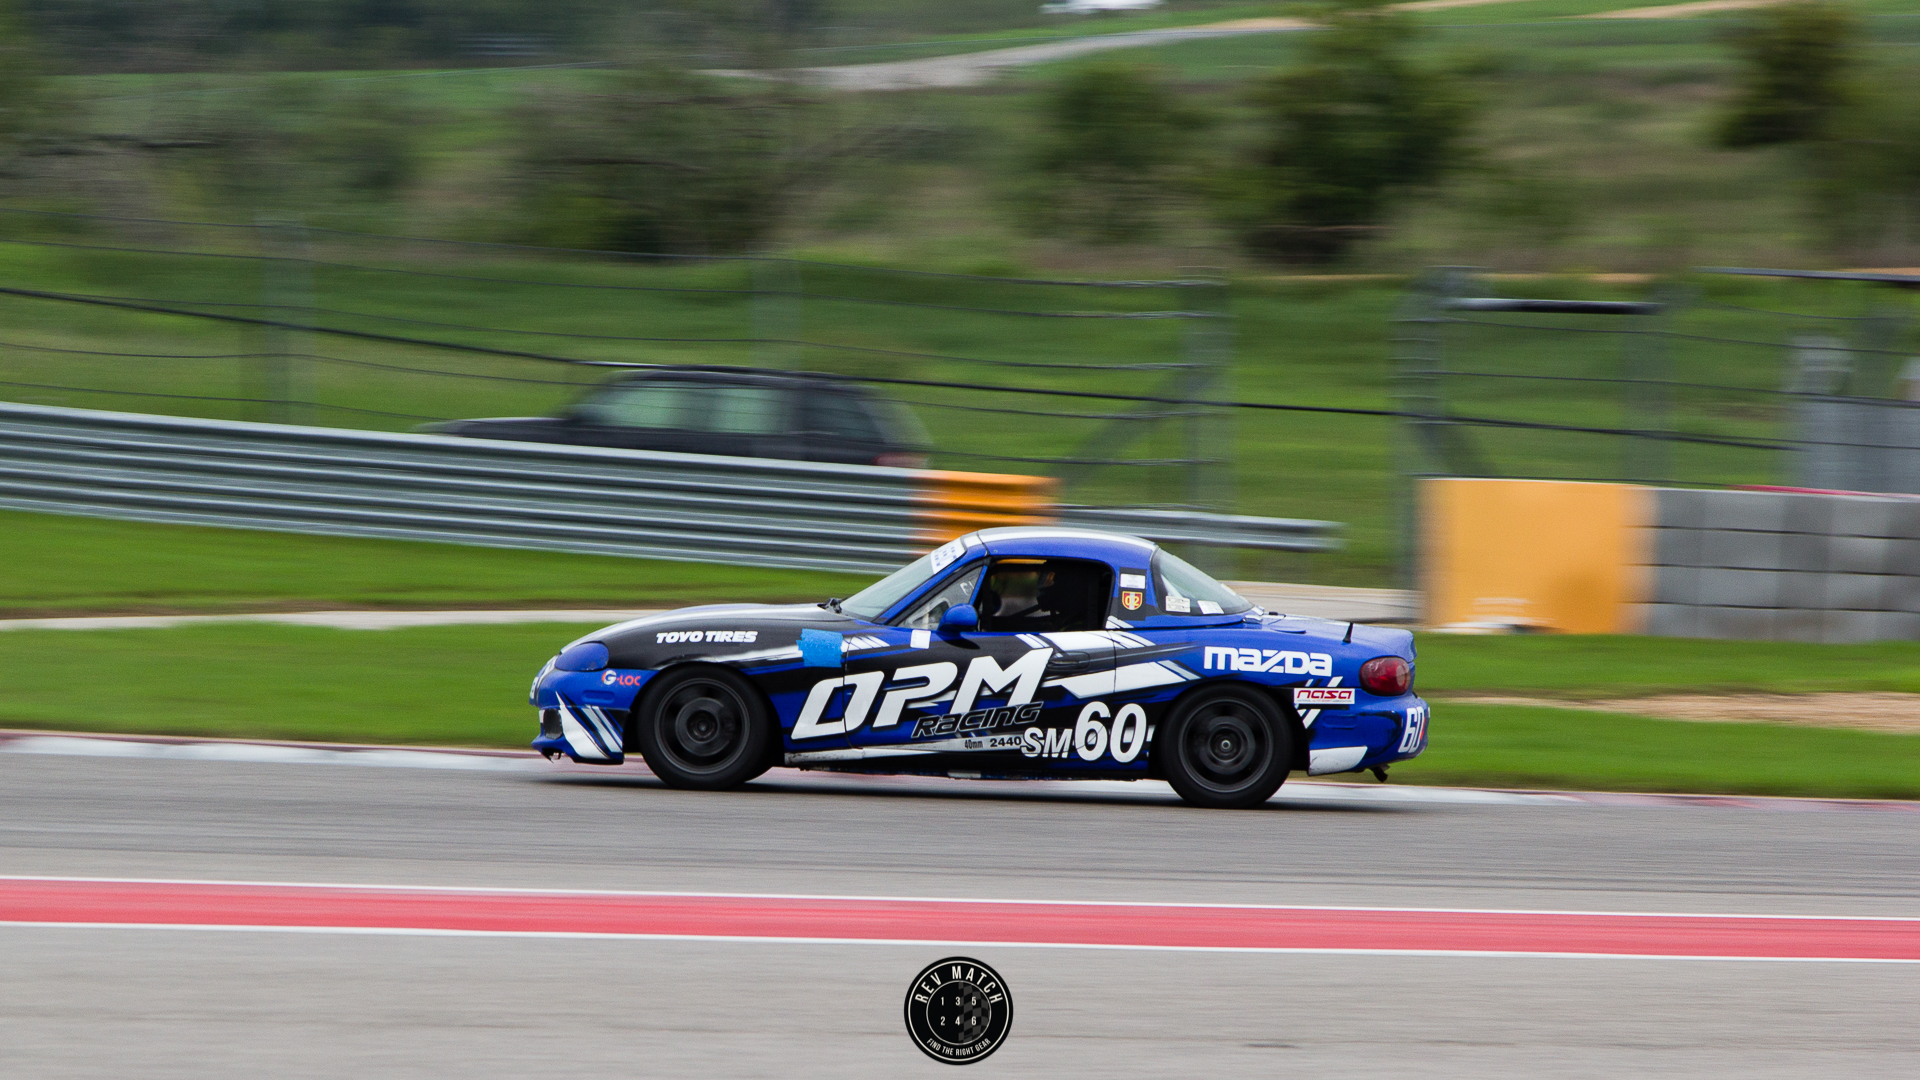 RMM x NASA at COTA 2018-35.jpg